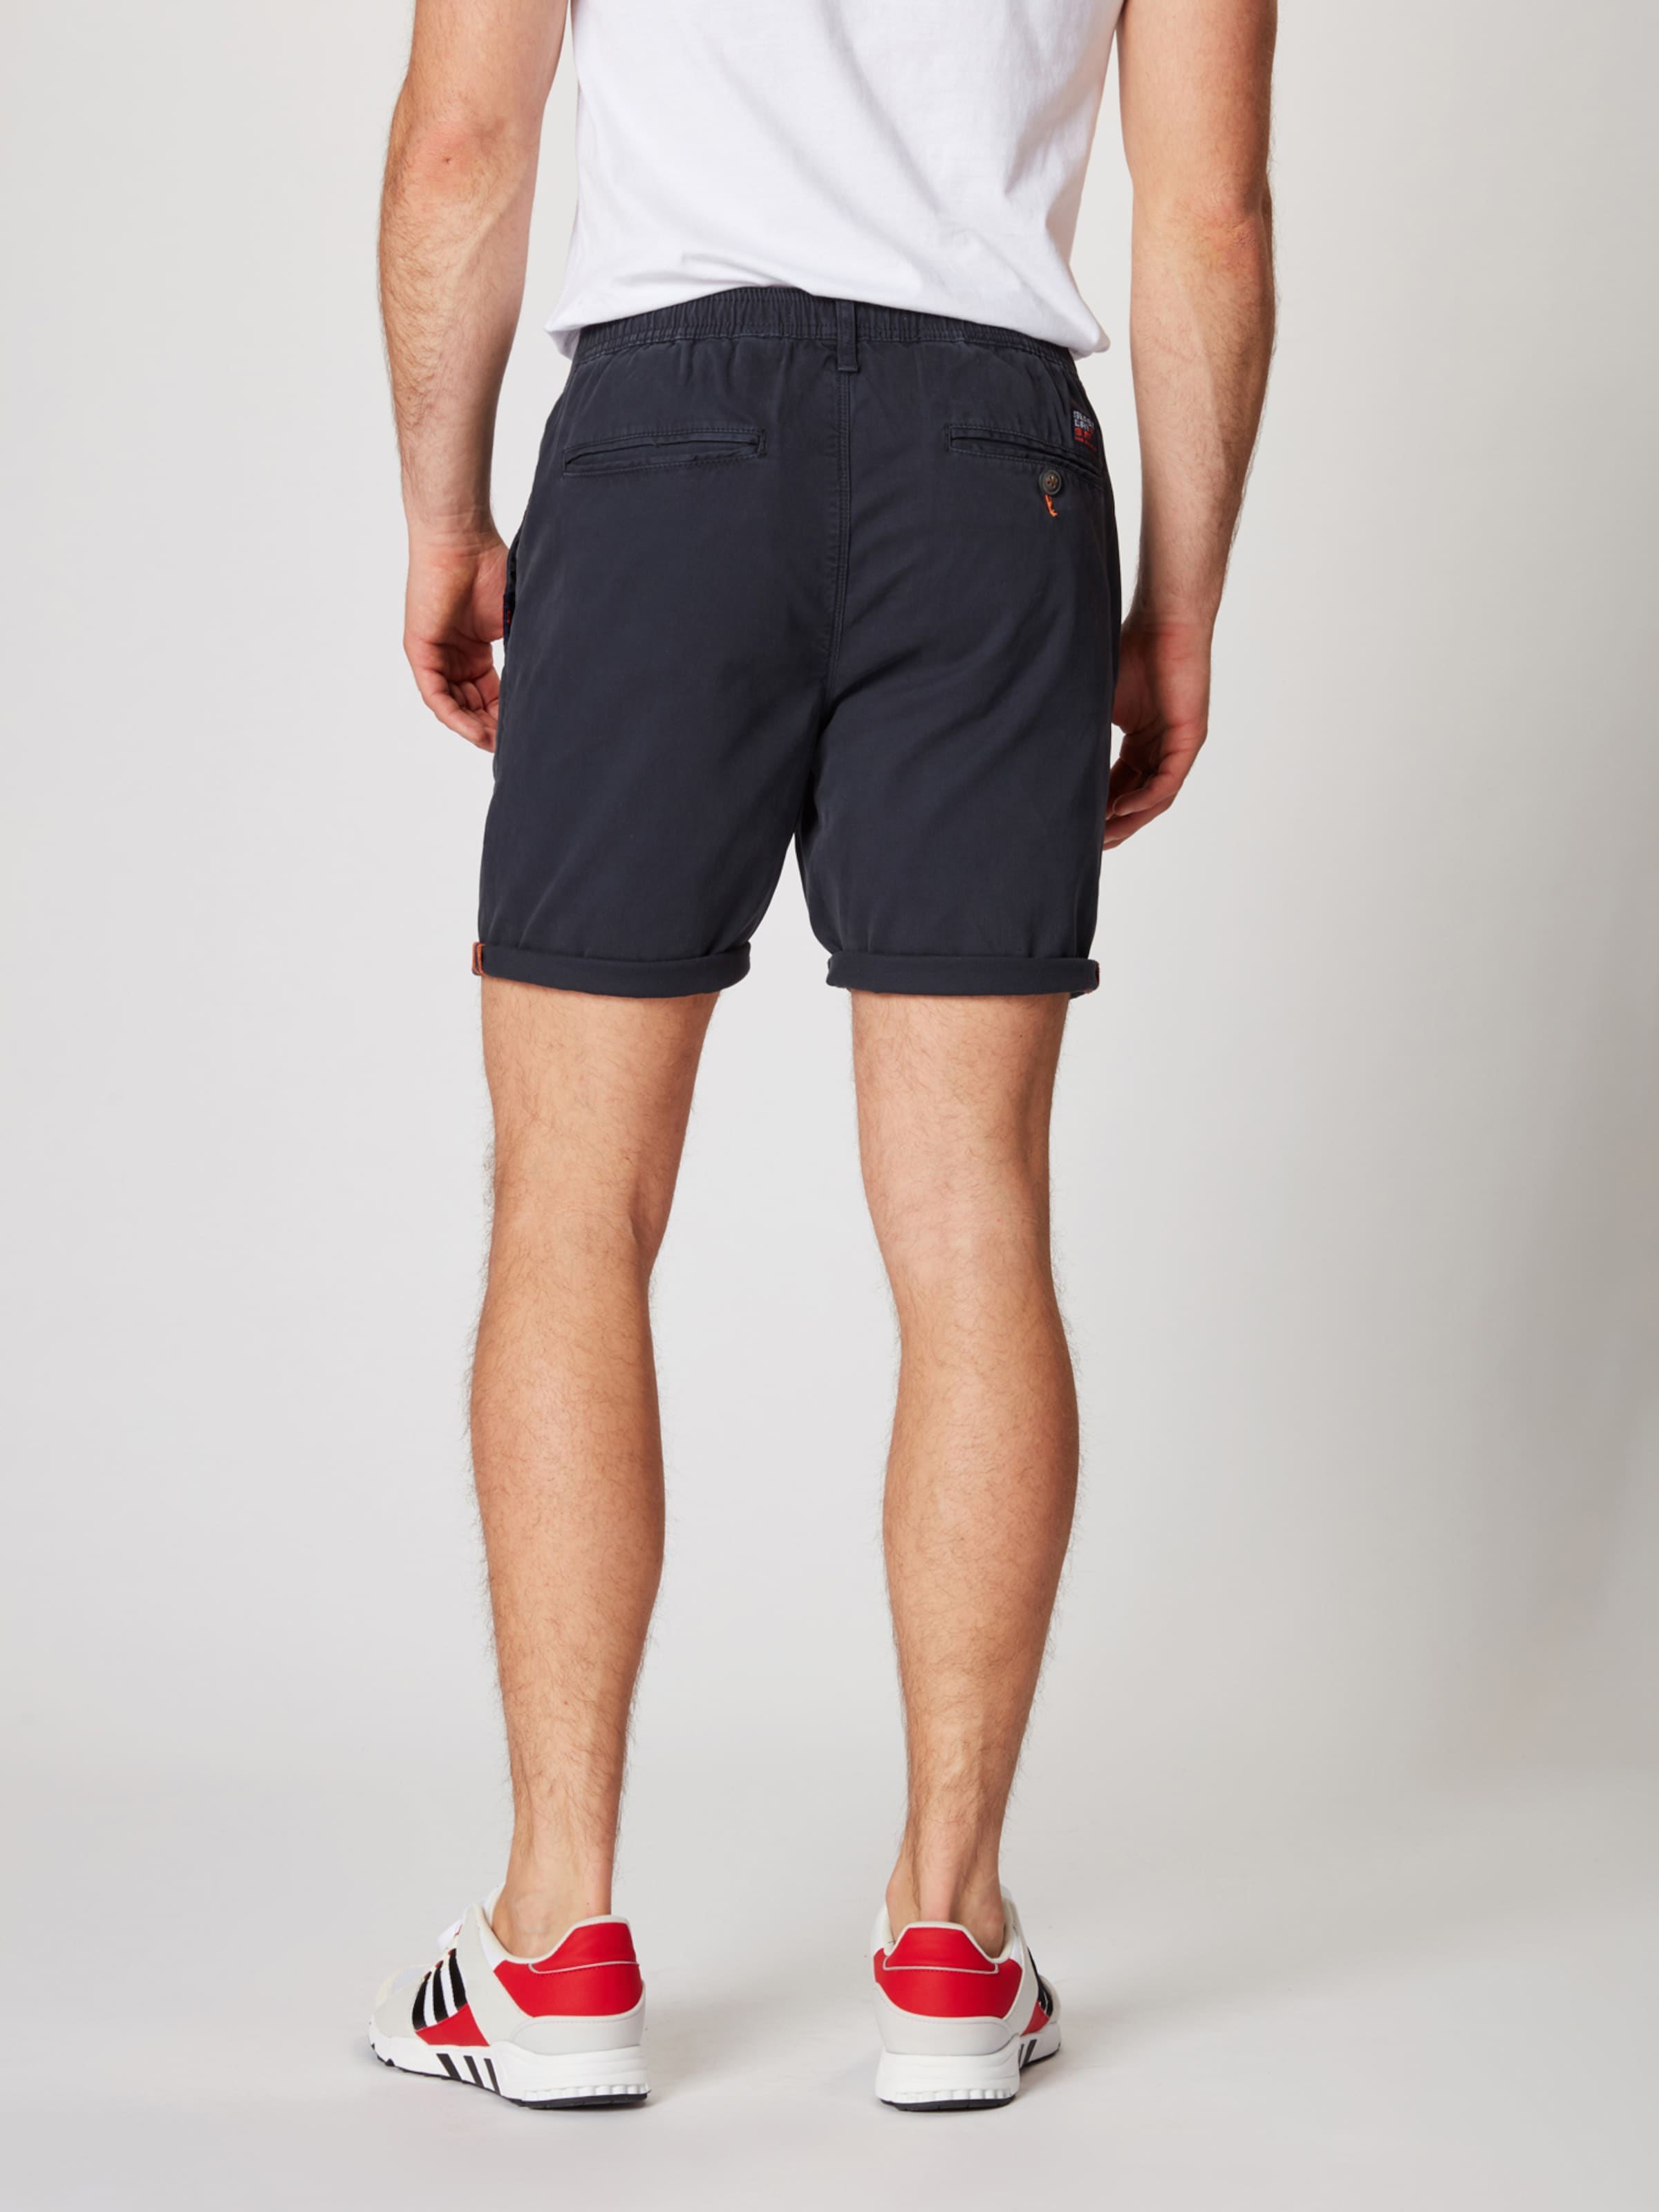 Navy Shorts Shorts In 'sunscorched' Superdry 'sunscorched' Superdry qSGUpMVz